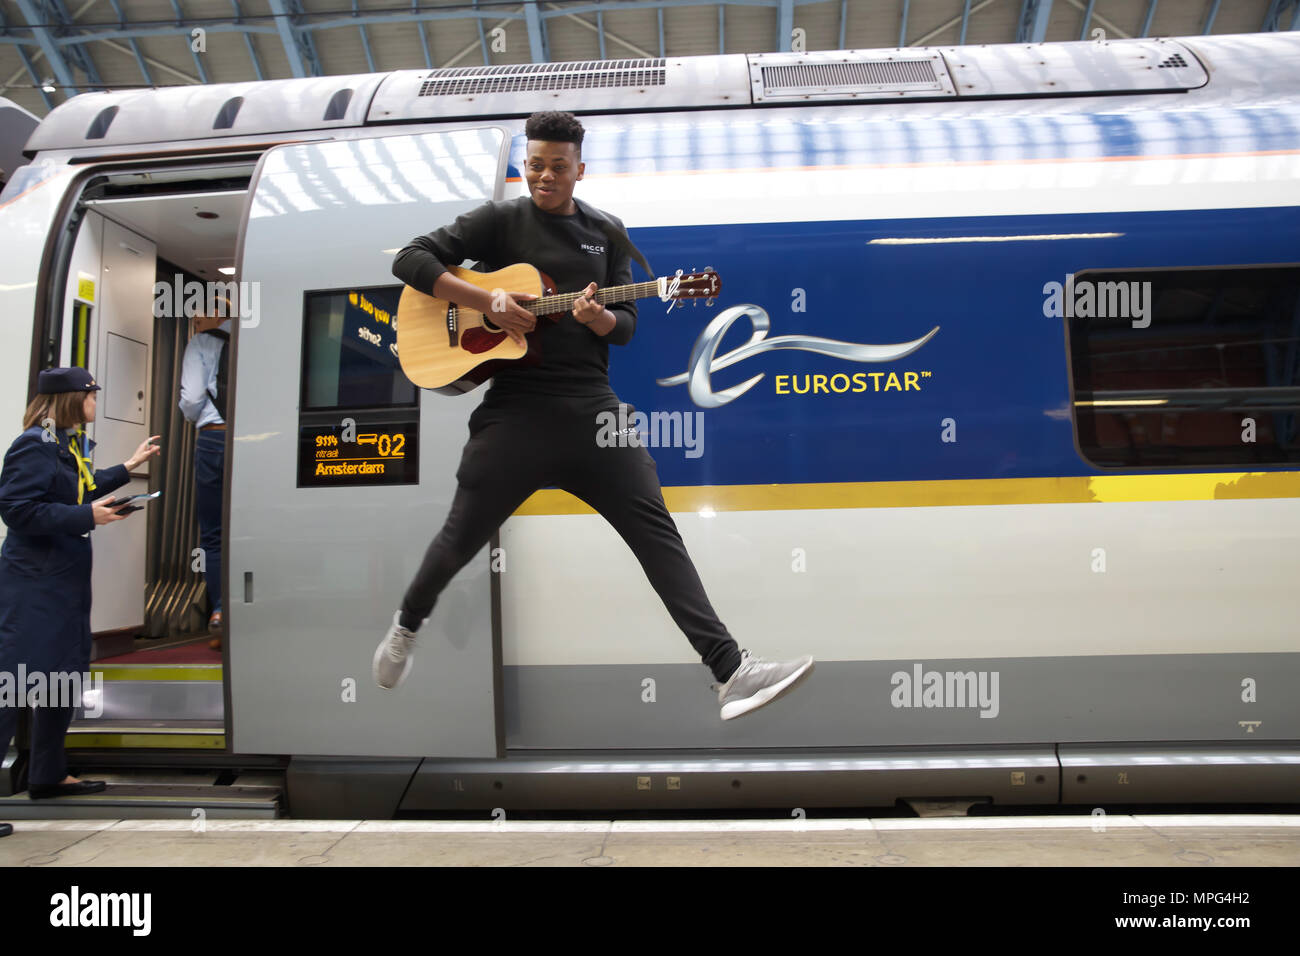 St Pancras, UK. 23rd May 2018. Ky Lewis, Winner of Gigs Eurostar prize jumps for joy before he boards the train to Amsterdam. He set off on a whirlwind busking tour of Amsterdam. He will serenade passengers on the train as they travel under the Channel and complete the day busking in Amsterdam.Credit Keith Larby/Alamy Live News - Stock Image